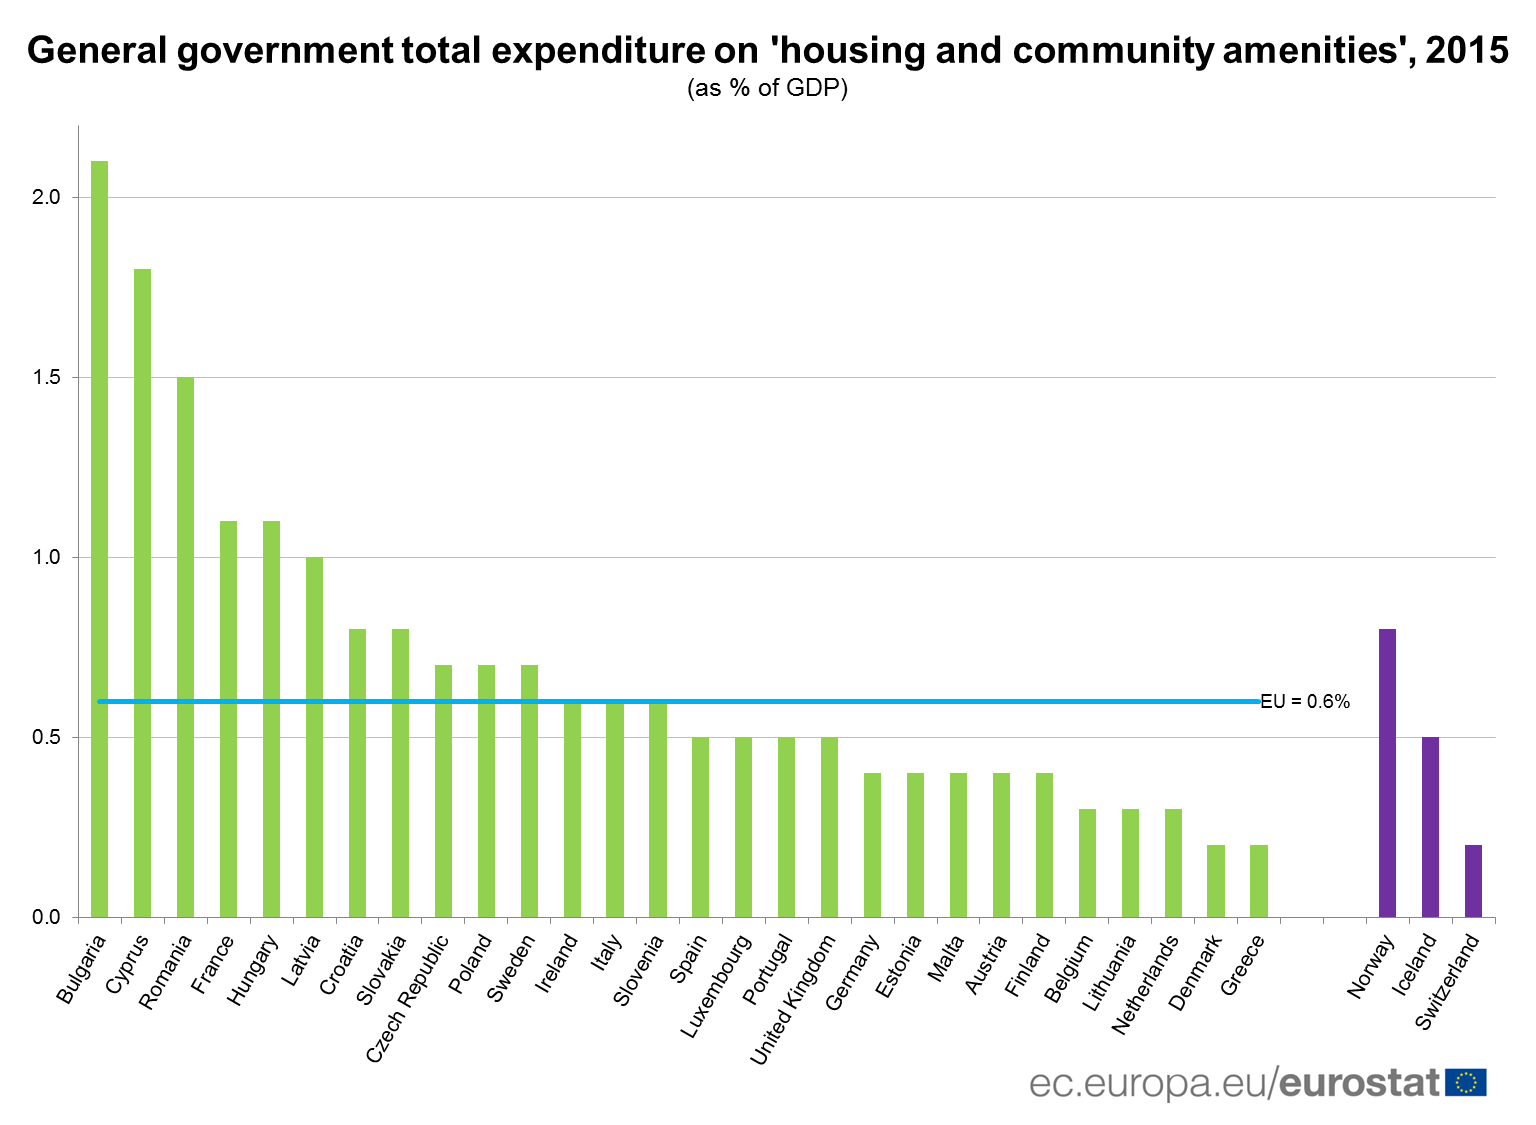 General government total expenditure on housing, 2015 (as % of GDP)